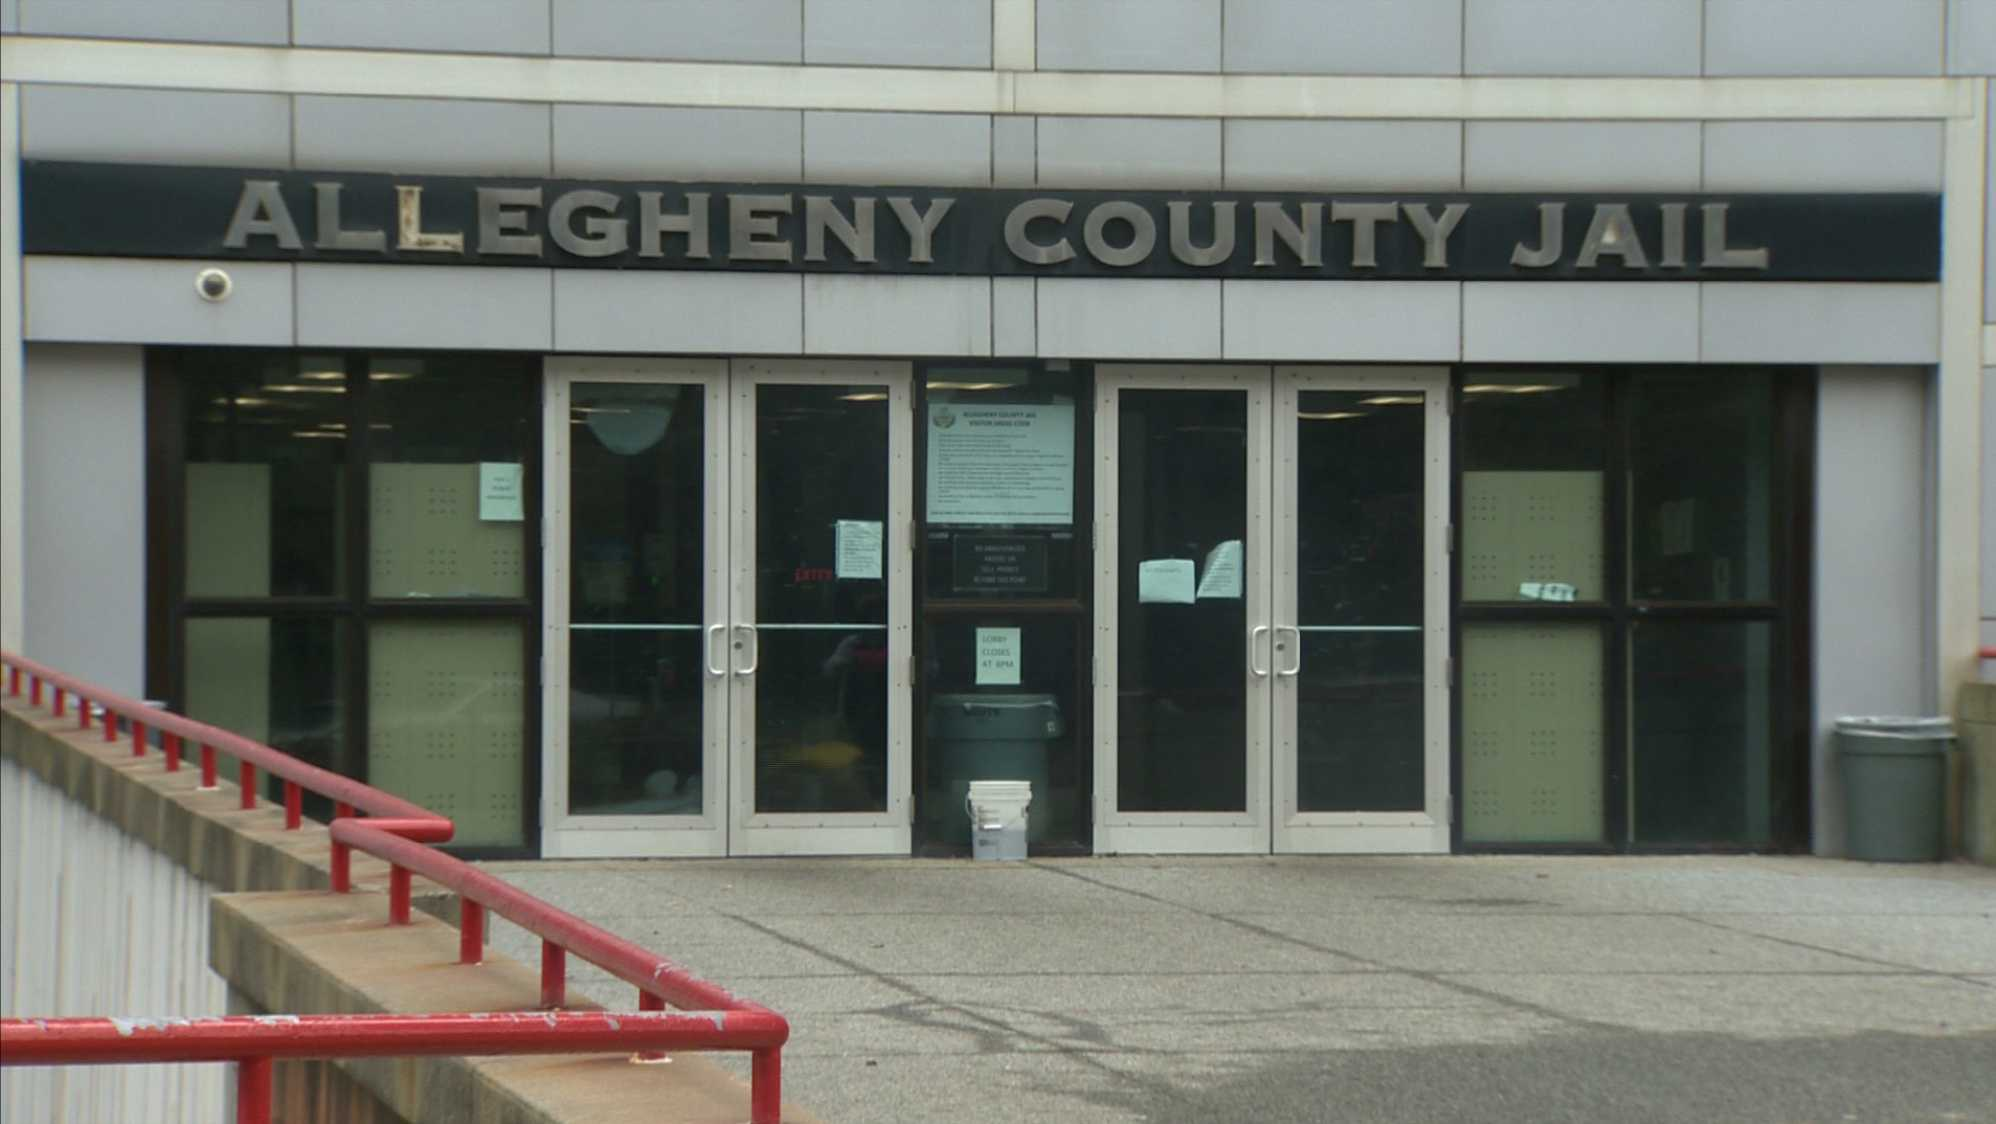 Allegheny County Jail entrance